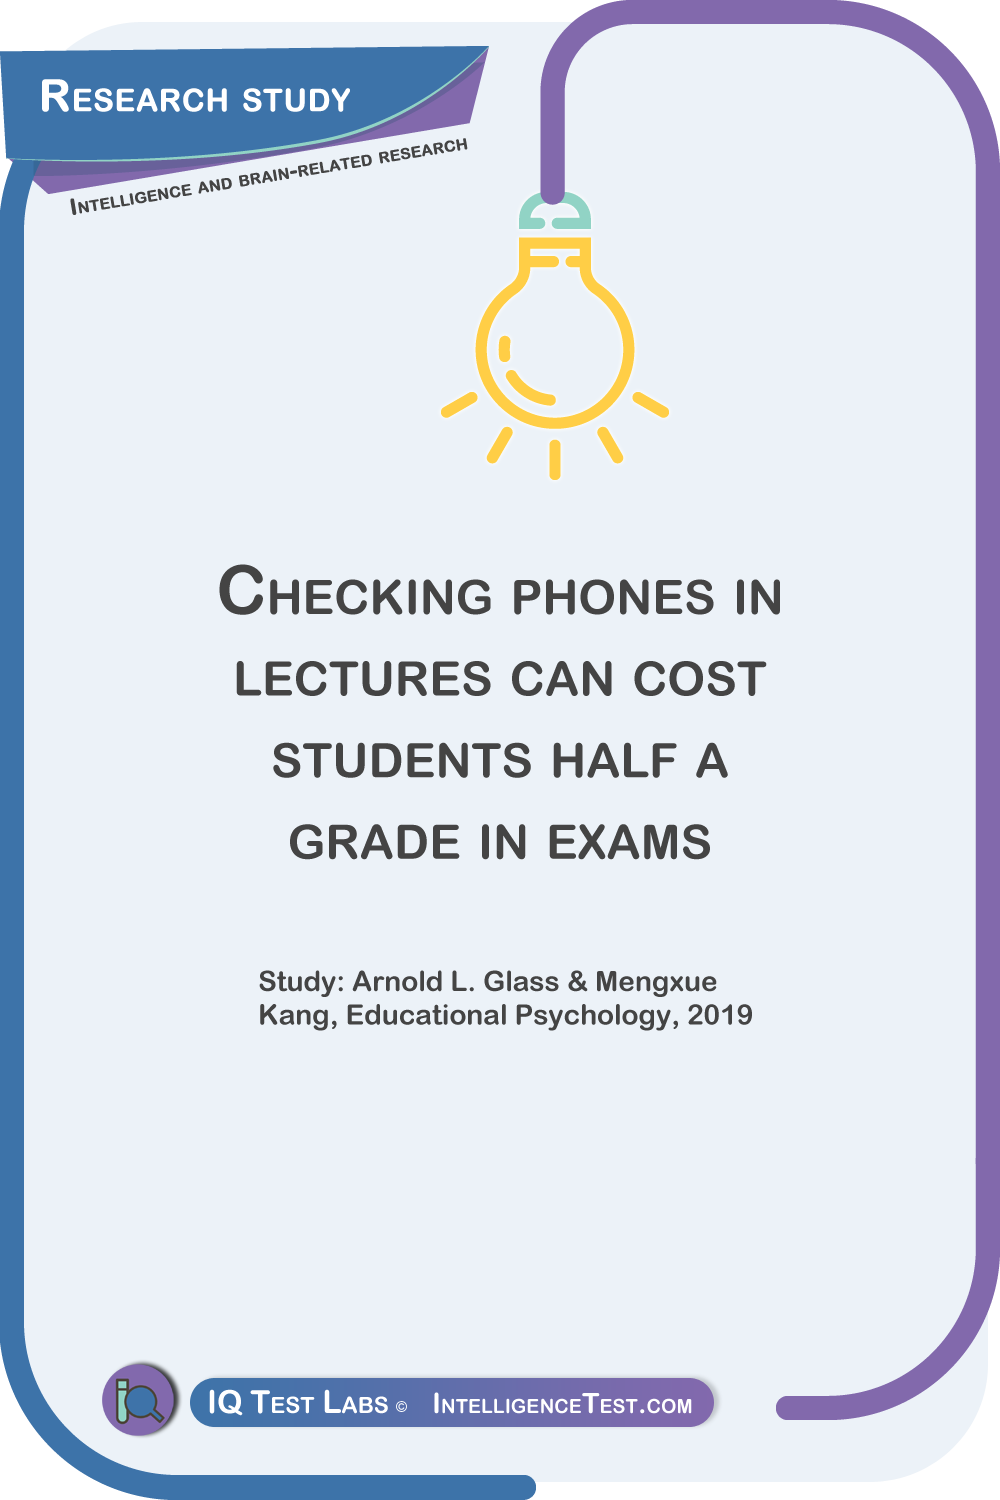 Checking phones in lectures can cost students half a grade in exams Study: Arnold L. Glass & Mengxue Kang, Educational Psychology, 2019.